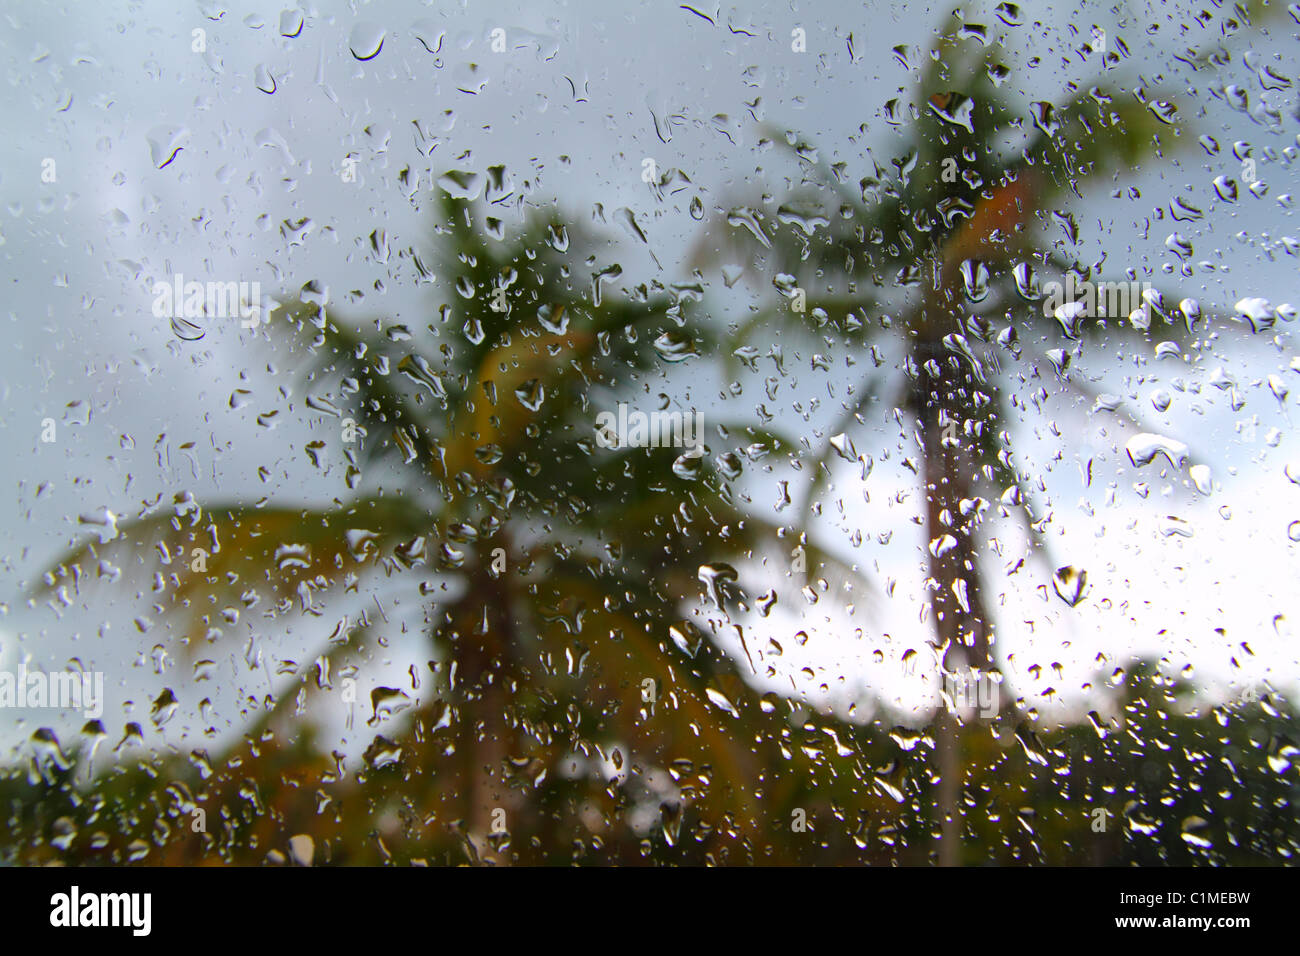 Hurricane tropical storm palm trees from car inside window glass water drops Stock Photo